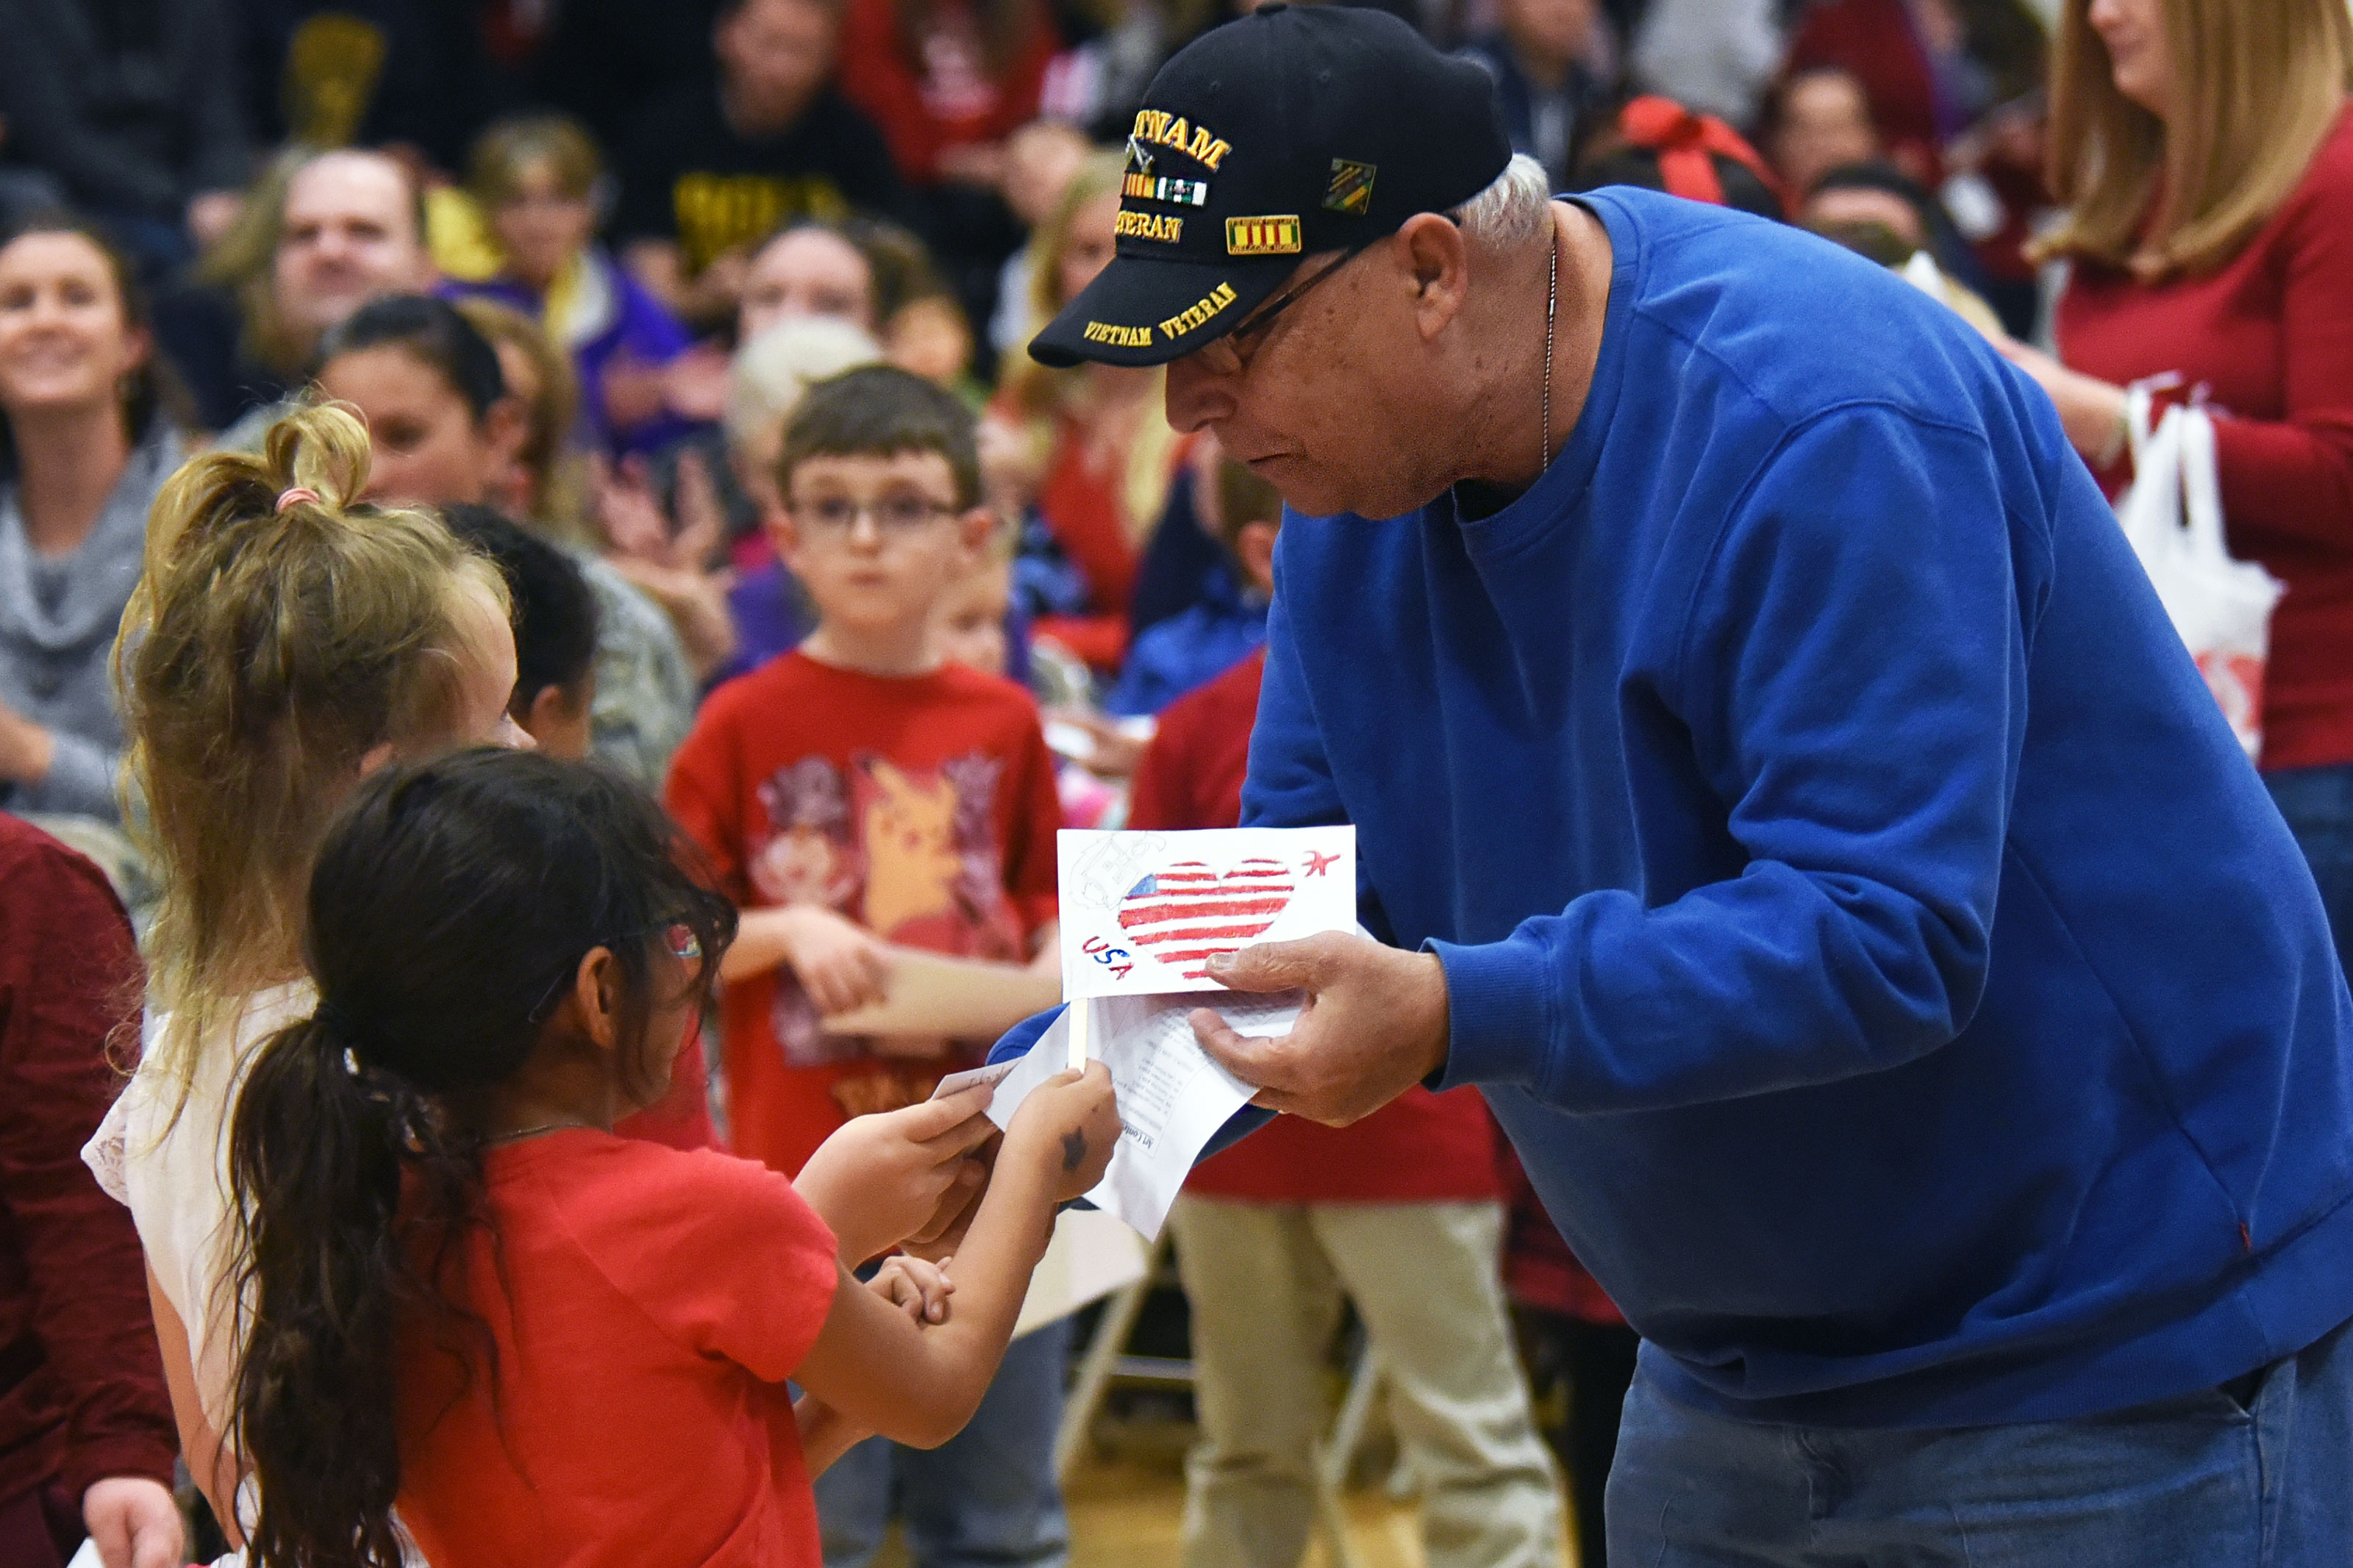 Ellicott students give thank you letters and hand-made flags to a Vietnam veteran during the Ellicott School District Veteran's Day ceremony at Ellicott, Colorado. The Ellicott community event honored veterans, both past and present. (U.S. Air Force/William Tracy)